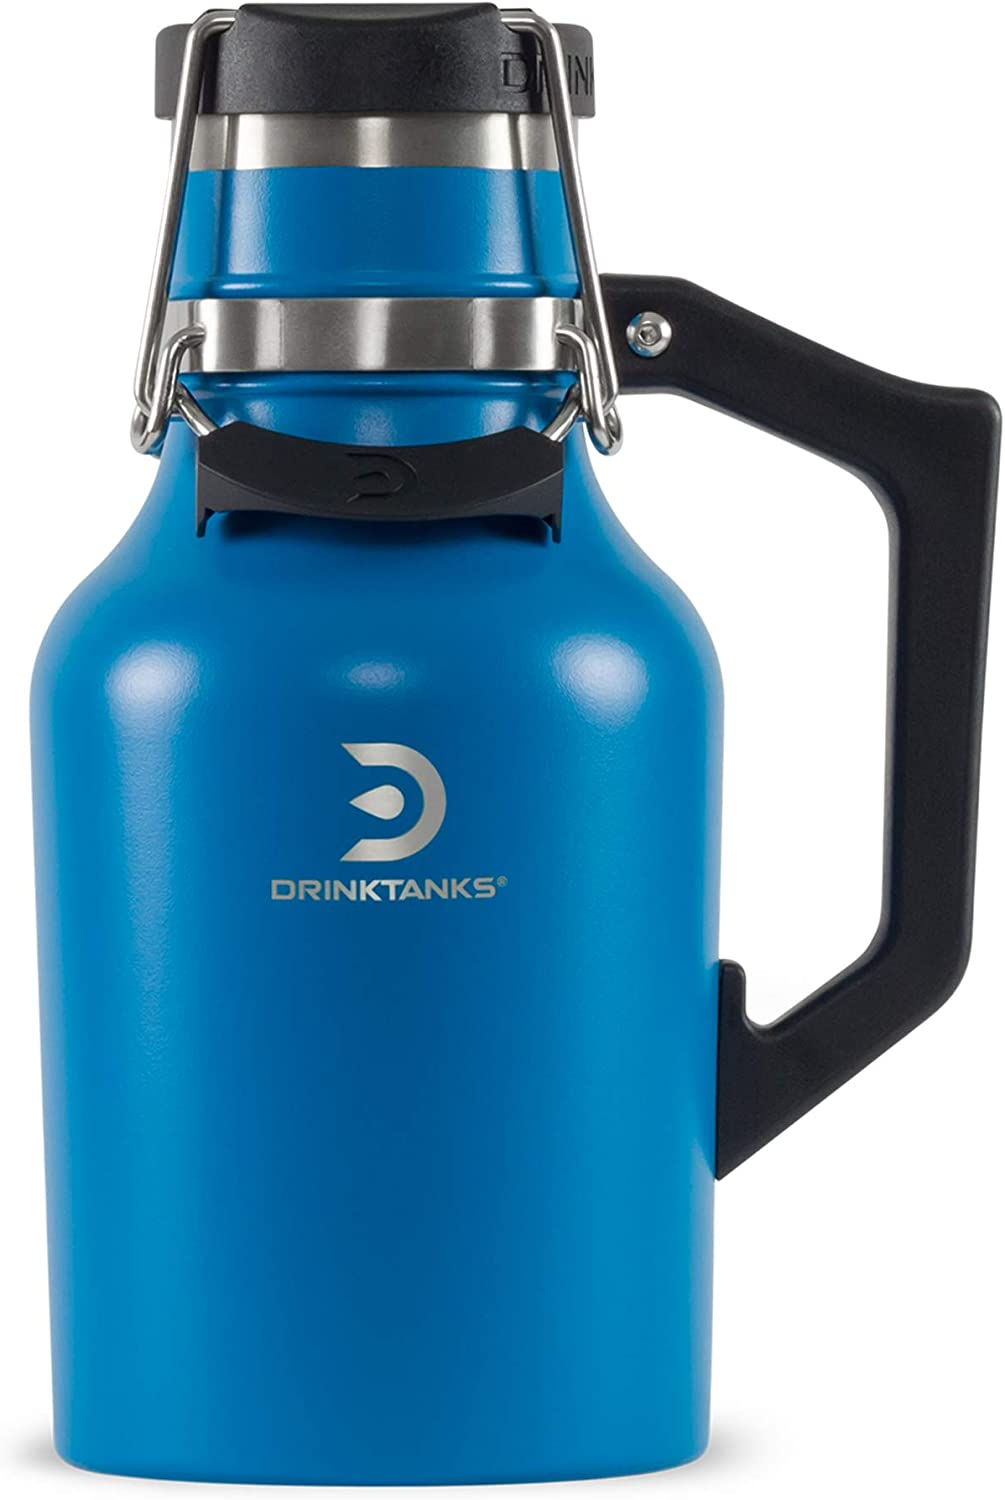 DrinkTanks Popular products 32 oz Vacuum Japan Maker New Insulated Growler Beer Stainless Steel